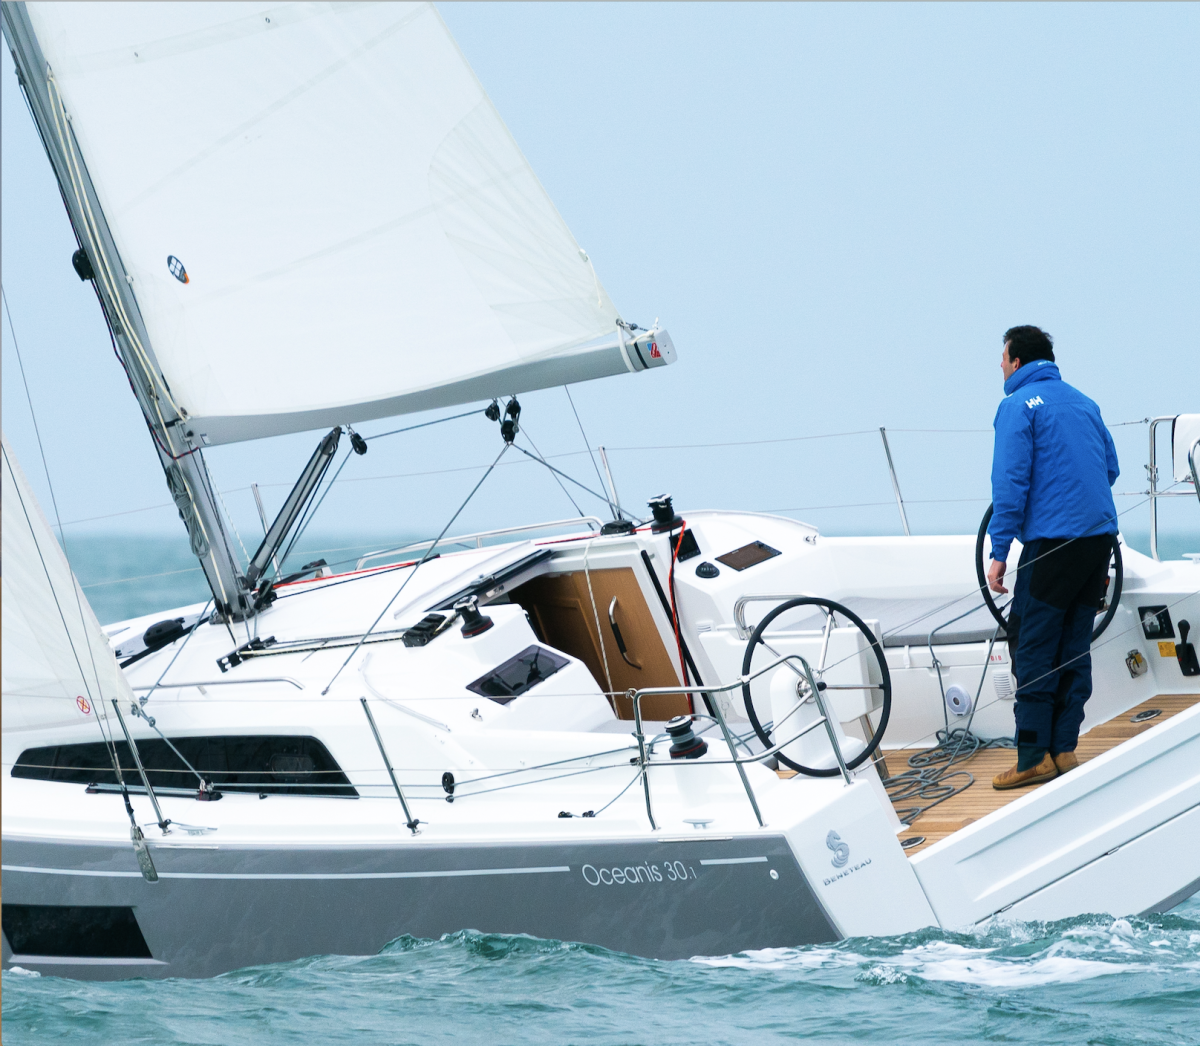 The vang on this Beneteau Oceanis 30.1 is vital to ensuring good mainsail shape